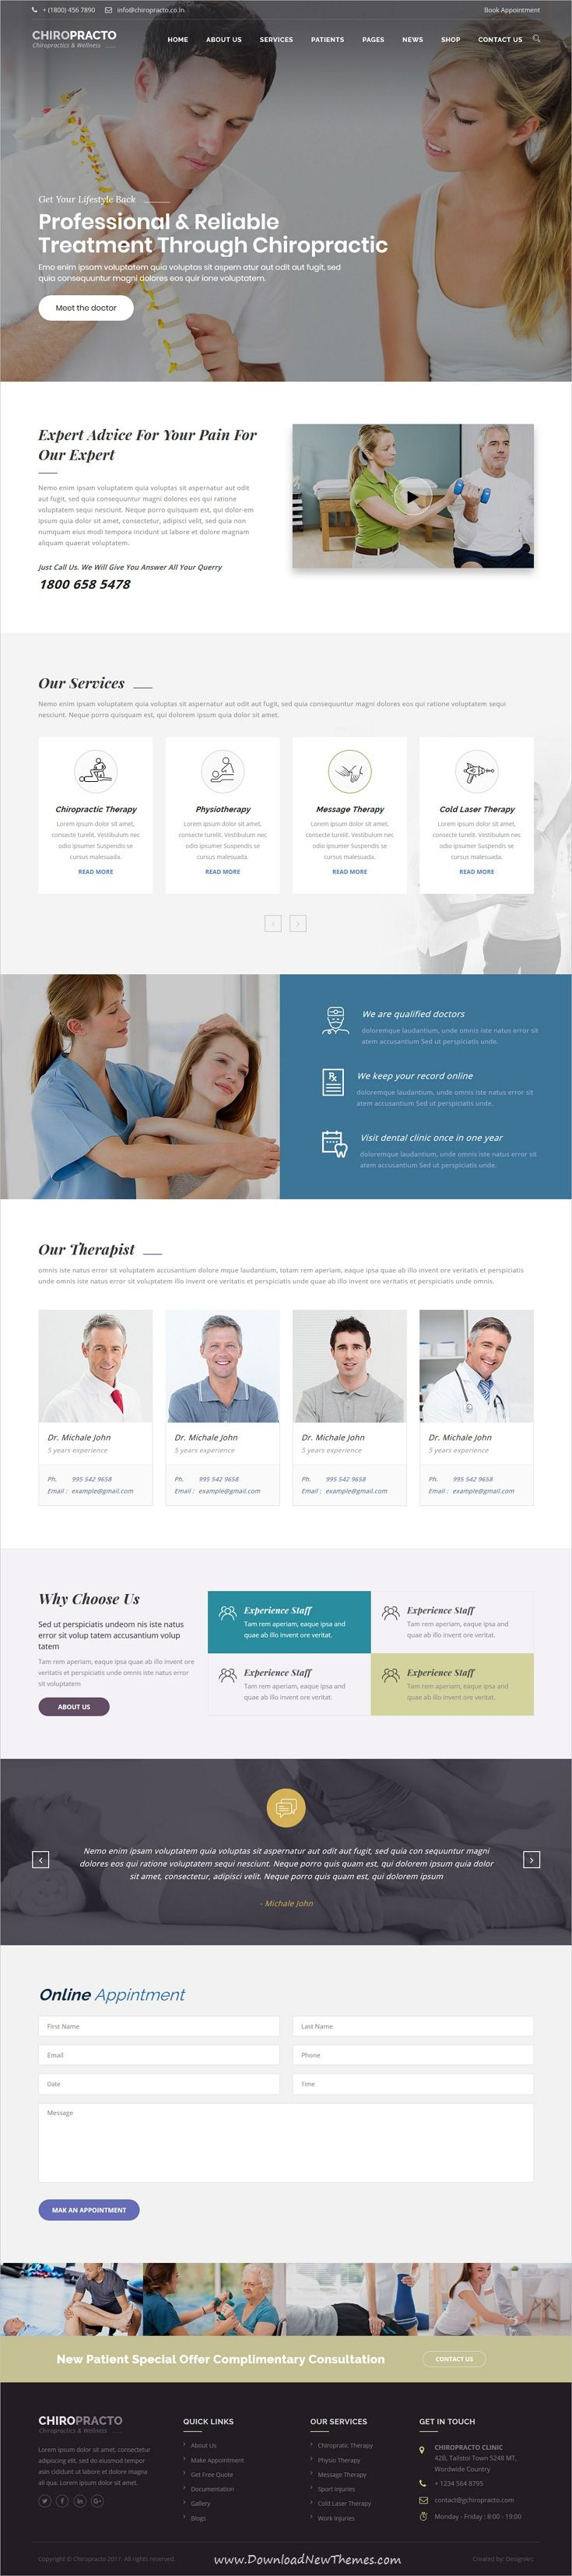 Chiropracto Physical Therapy Html Template Medical Clinic Design Clinic Design Medical Design